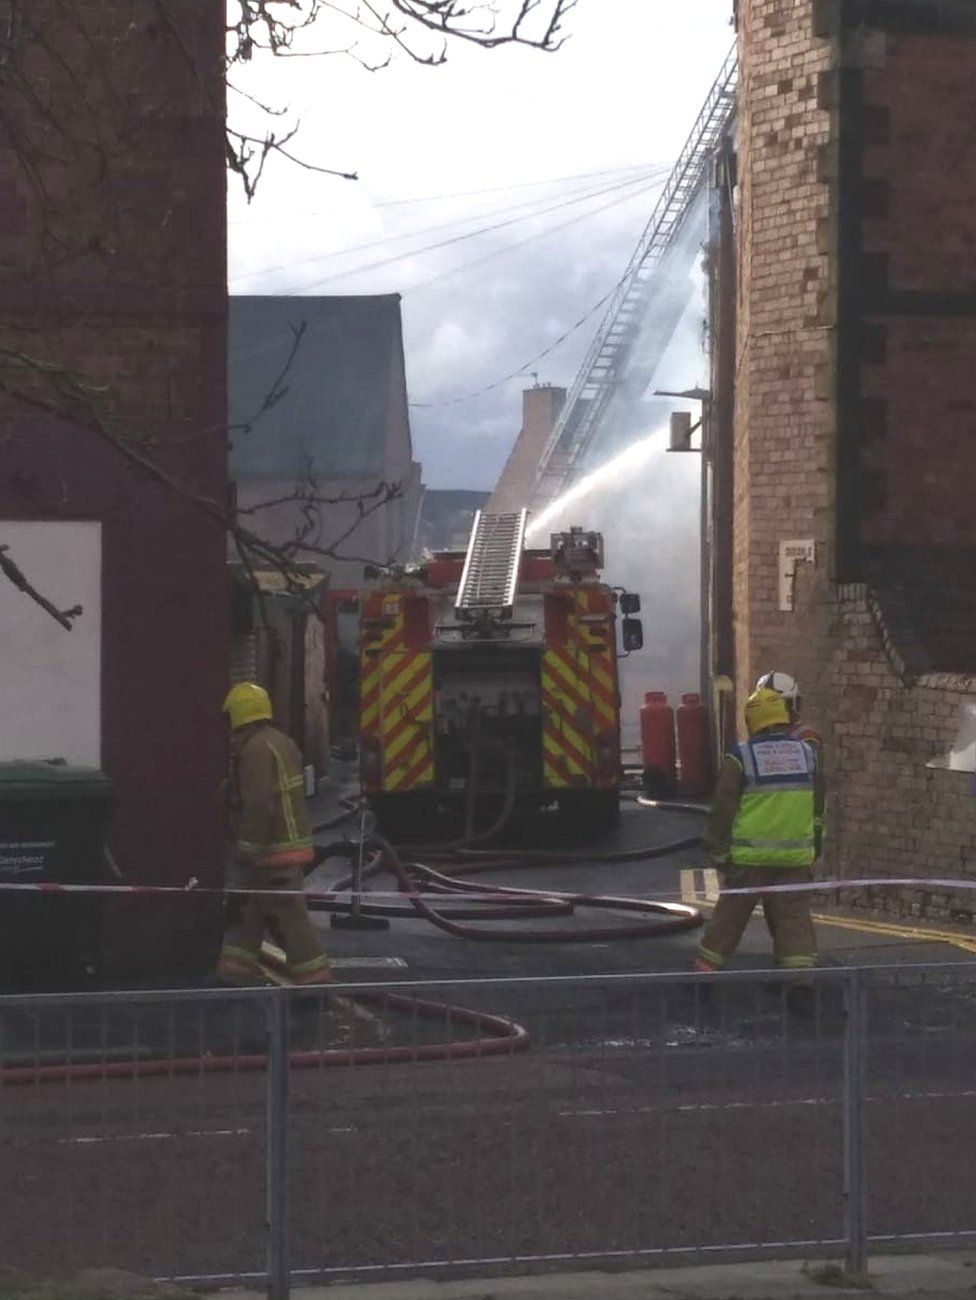 Firefighters tackling fire in Gateshead